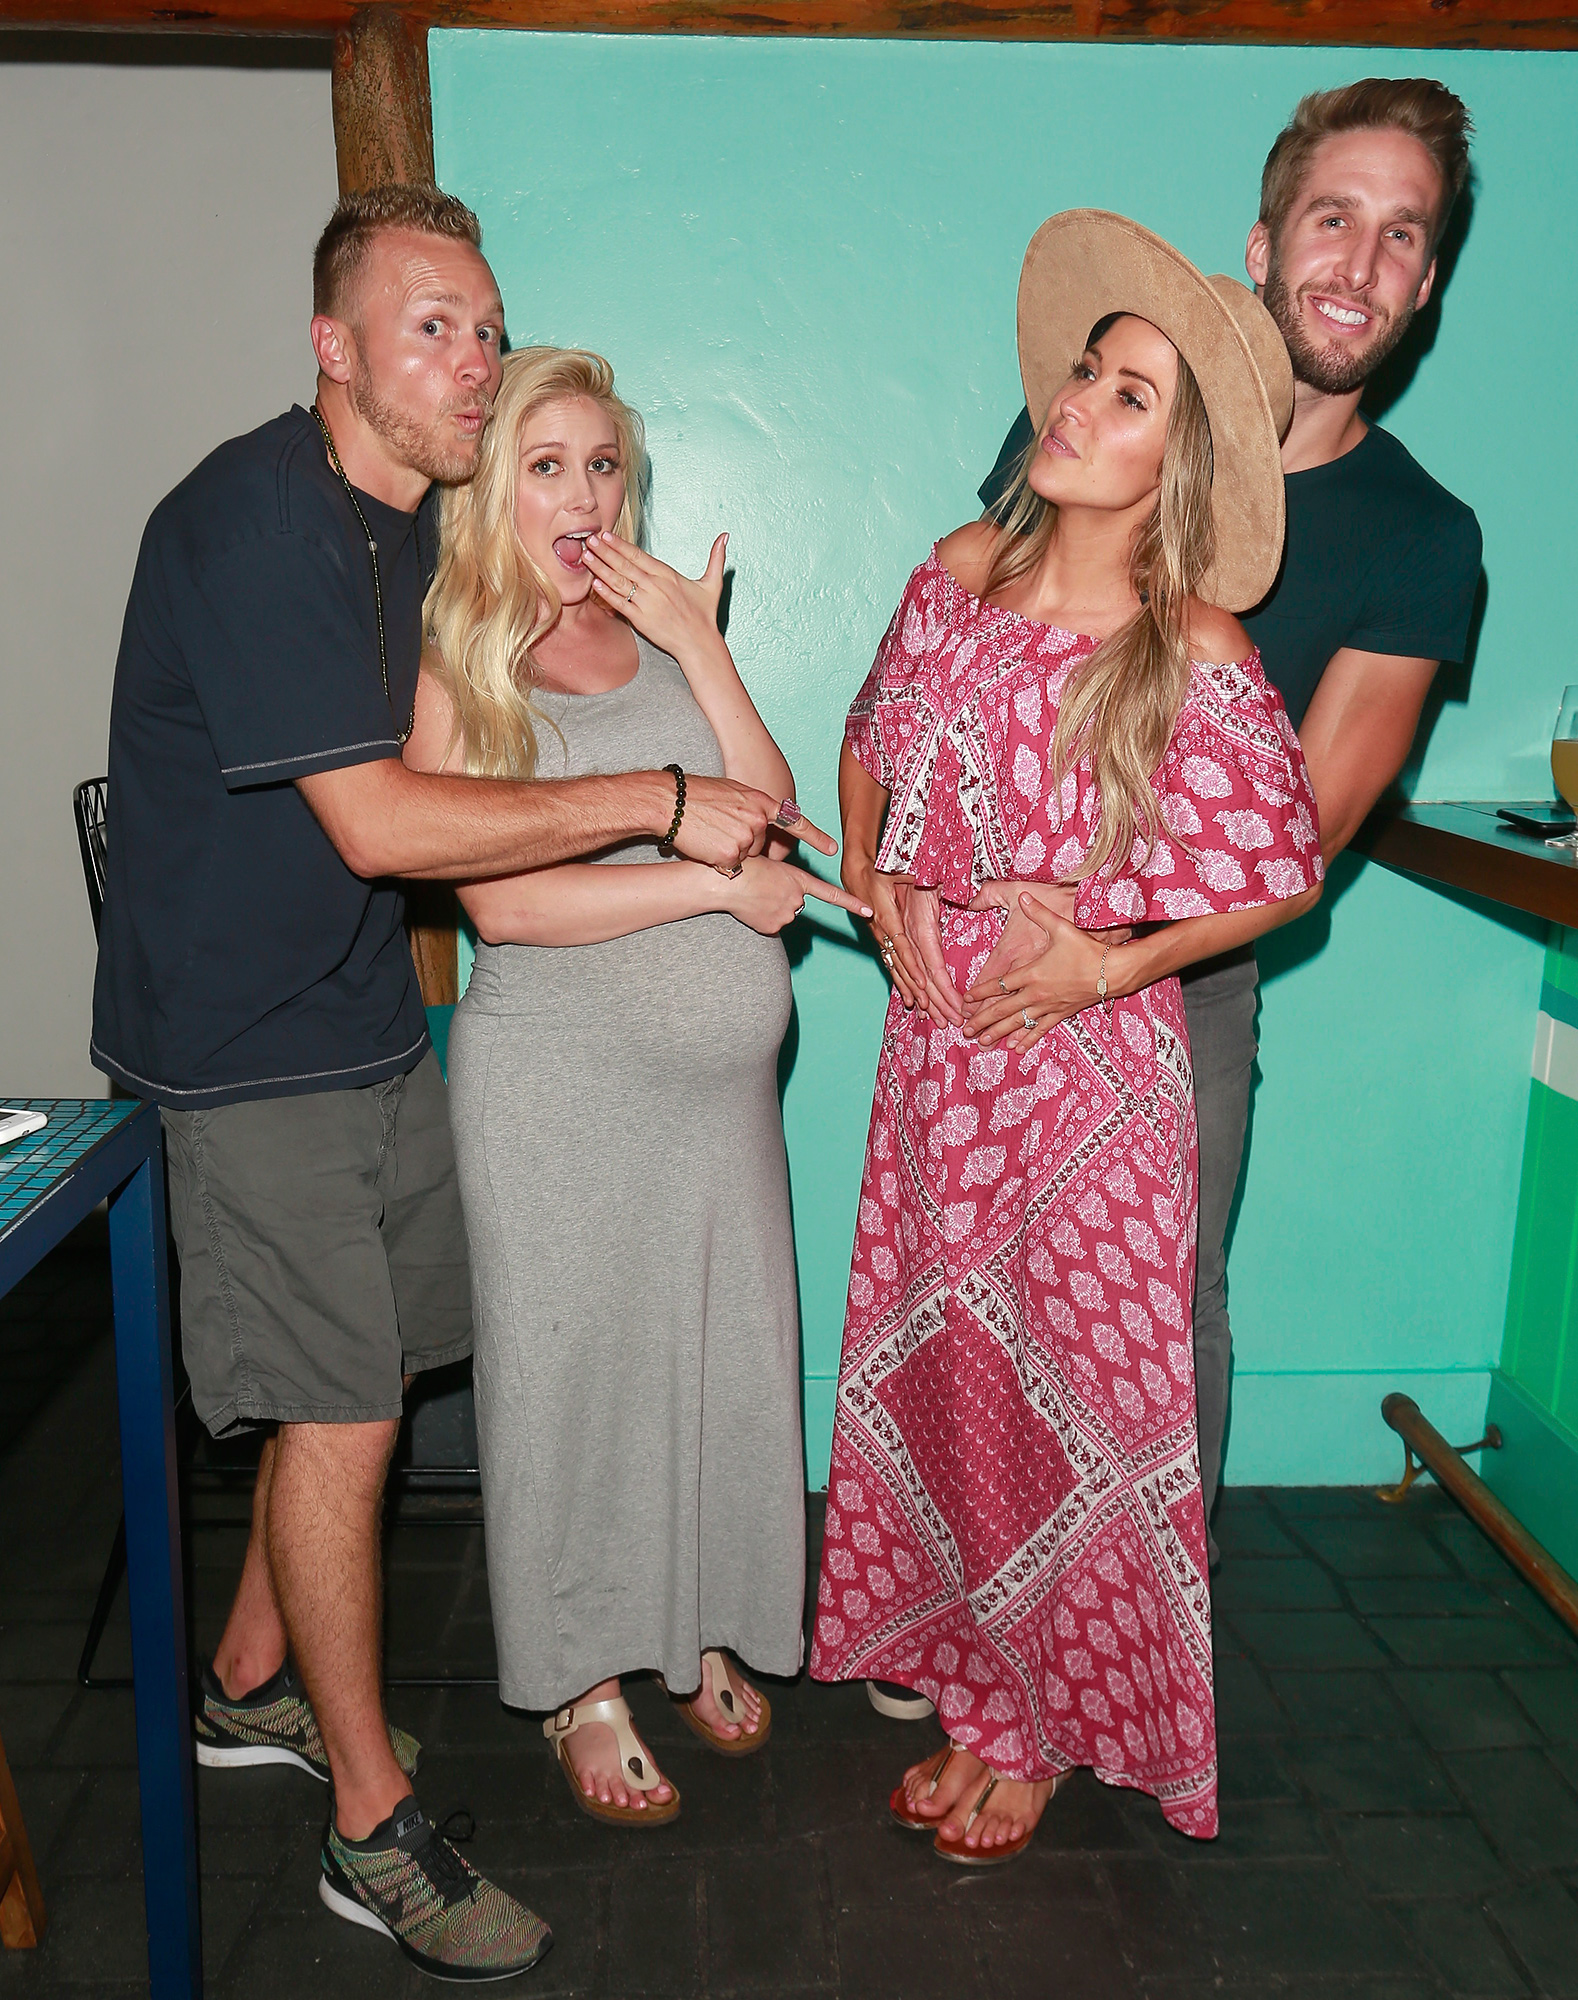 EXCLUSIVE: A pregnant Heidi Montag, Spencer Pratt, Kaitlyn Bristowe, and Shawn Booth are seen having a great time at Tallulah's restaurant in Santa Monica.